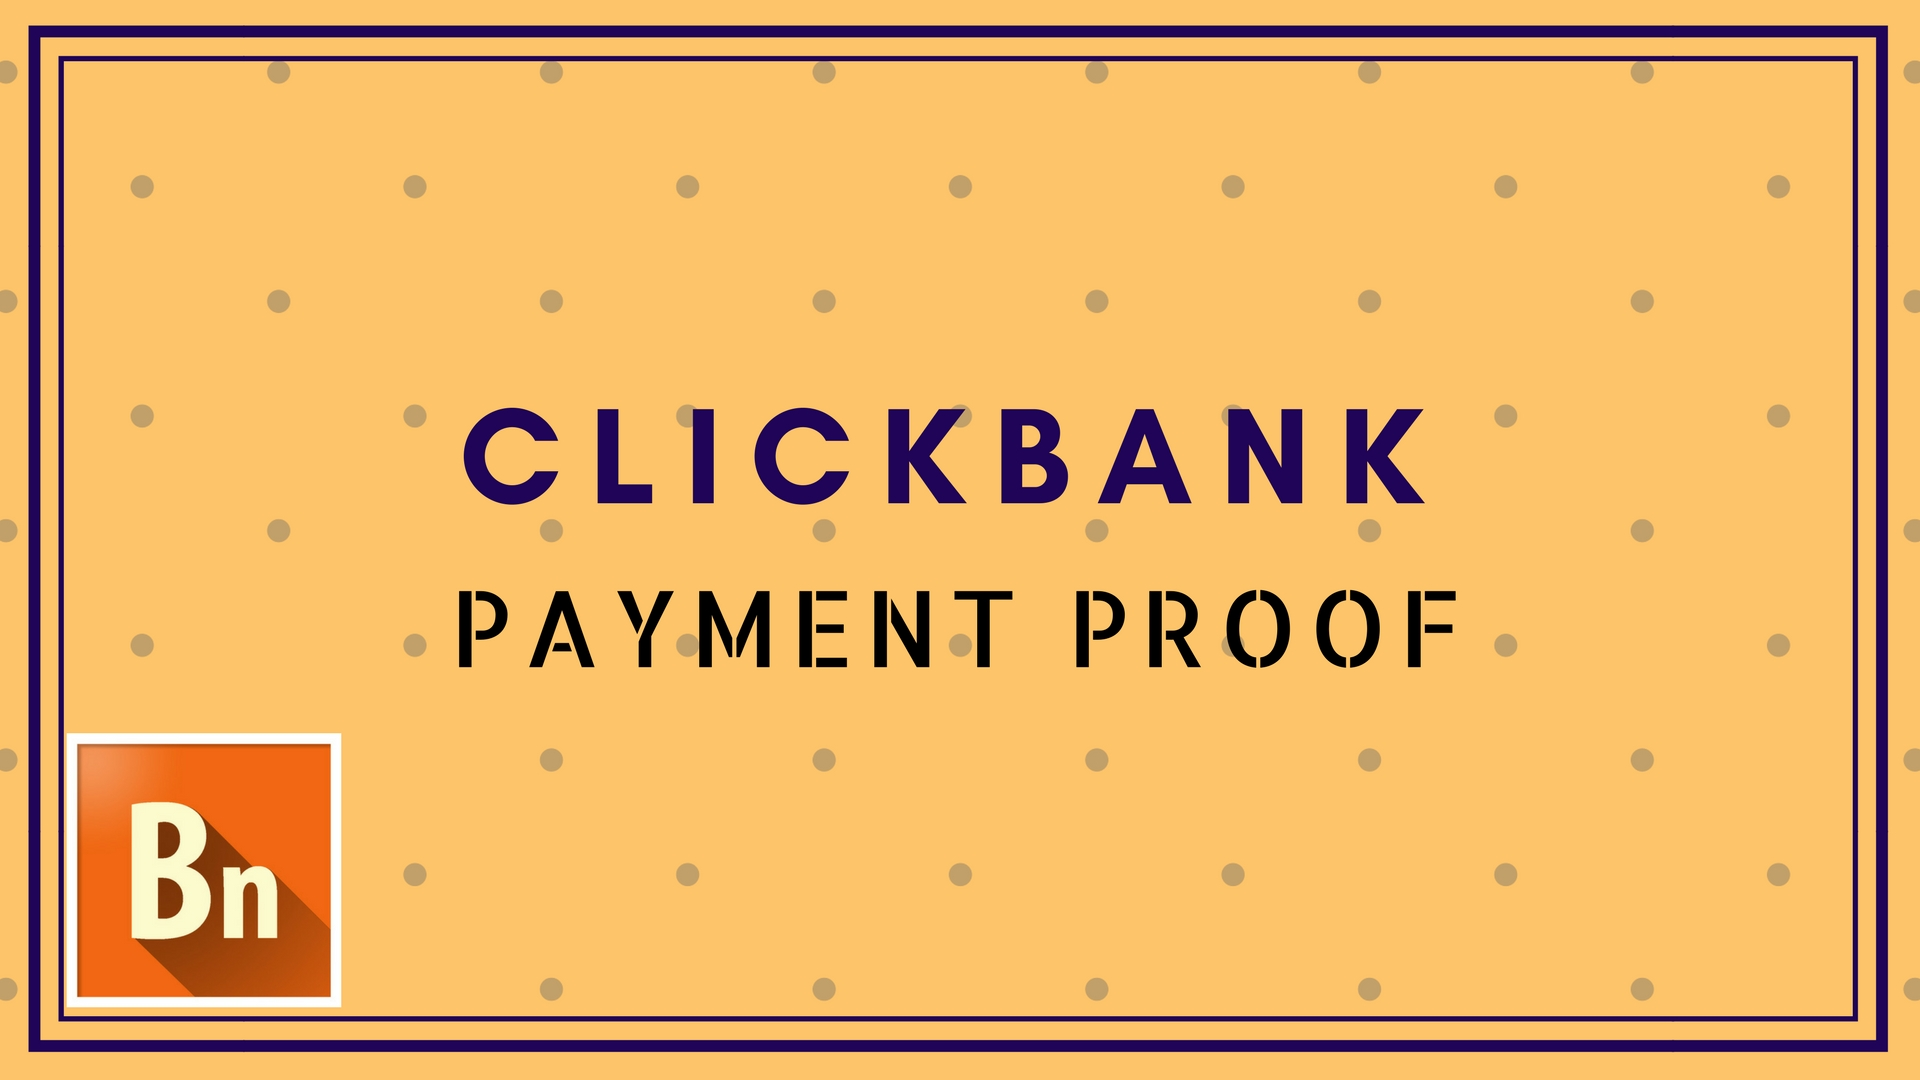 Clickbank Payment Proof for Publishers 2018